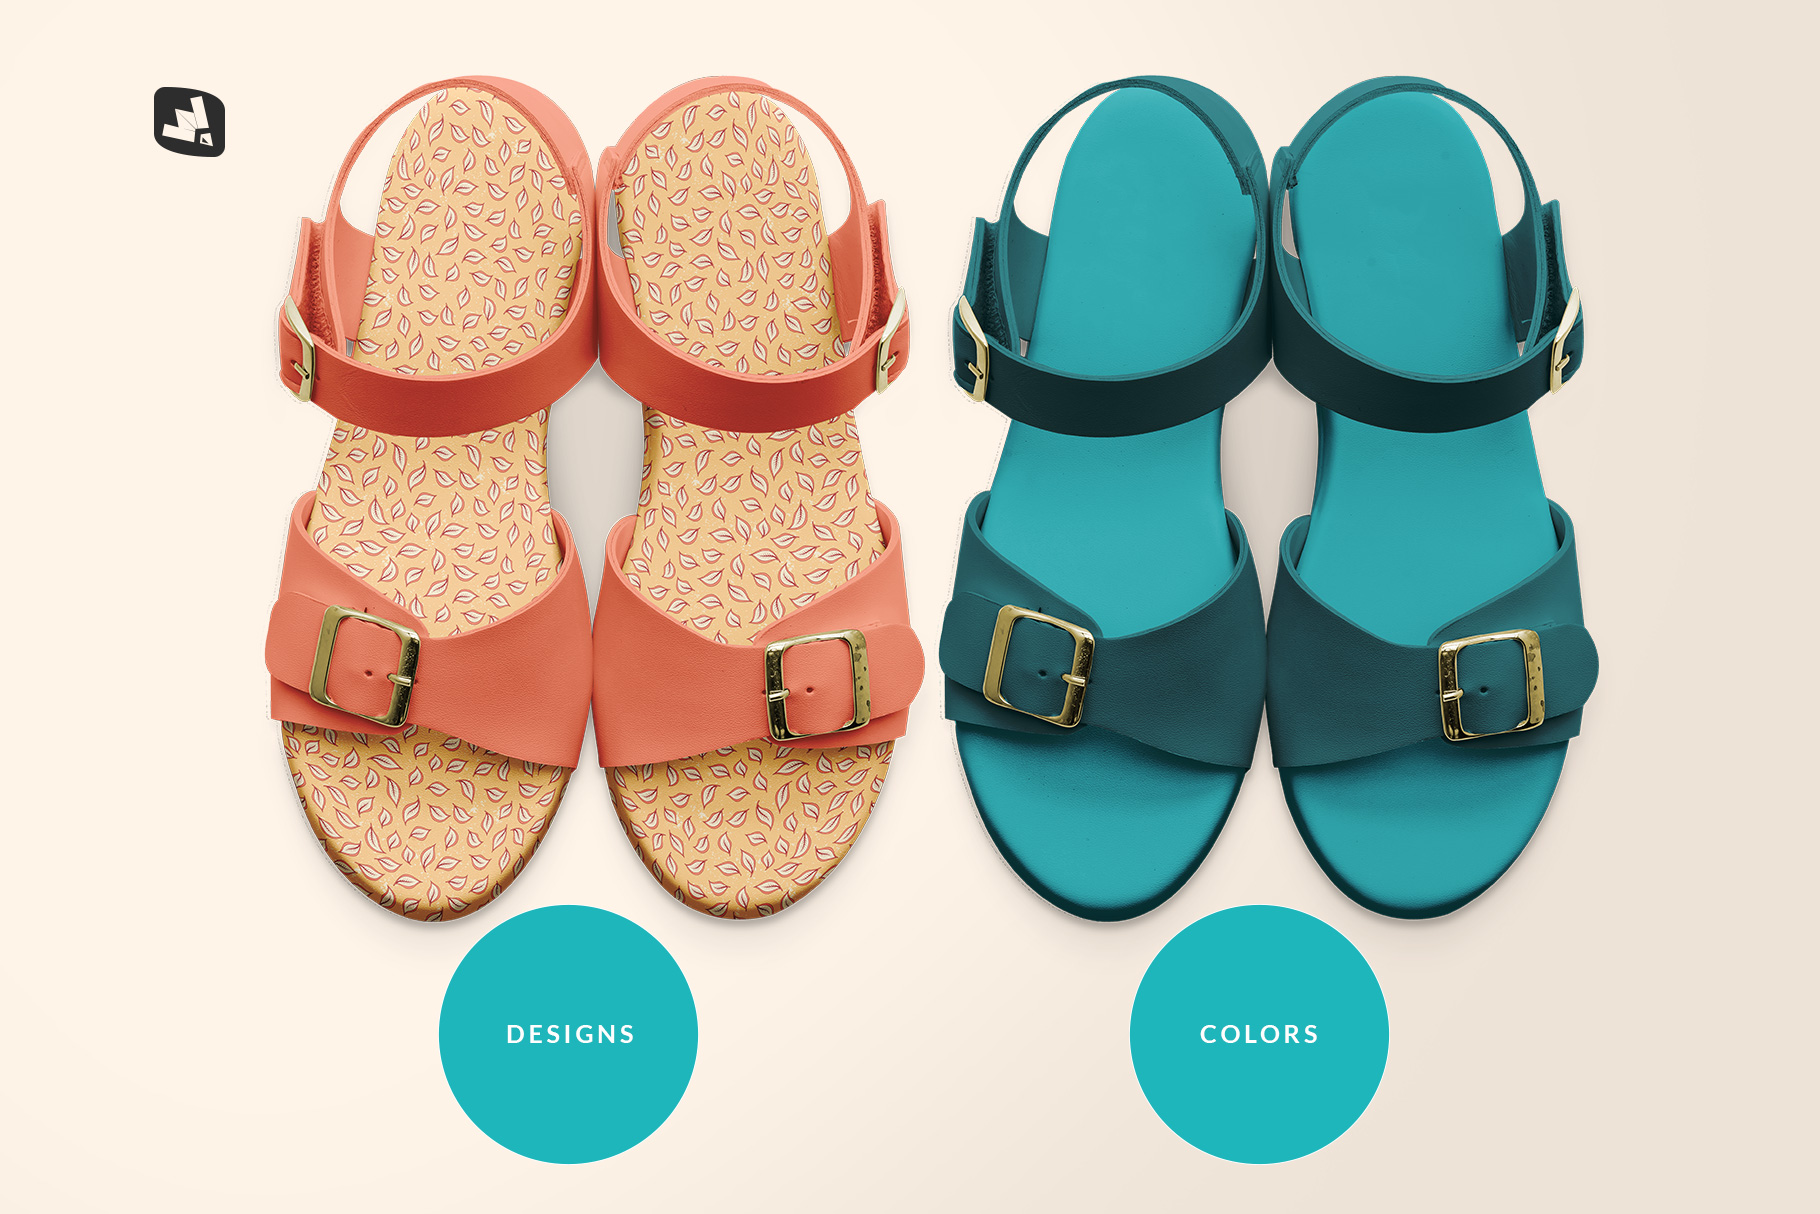 types of the top view leather sandal mockup